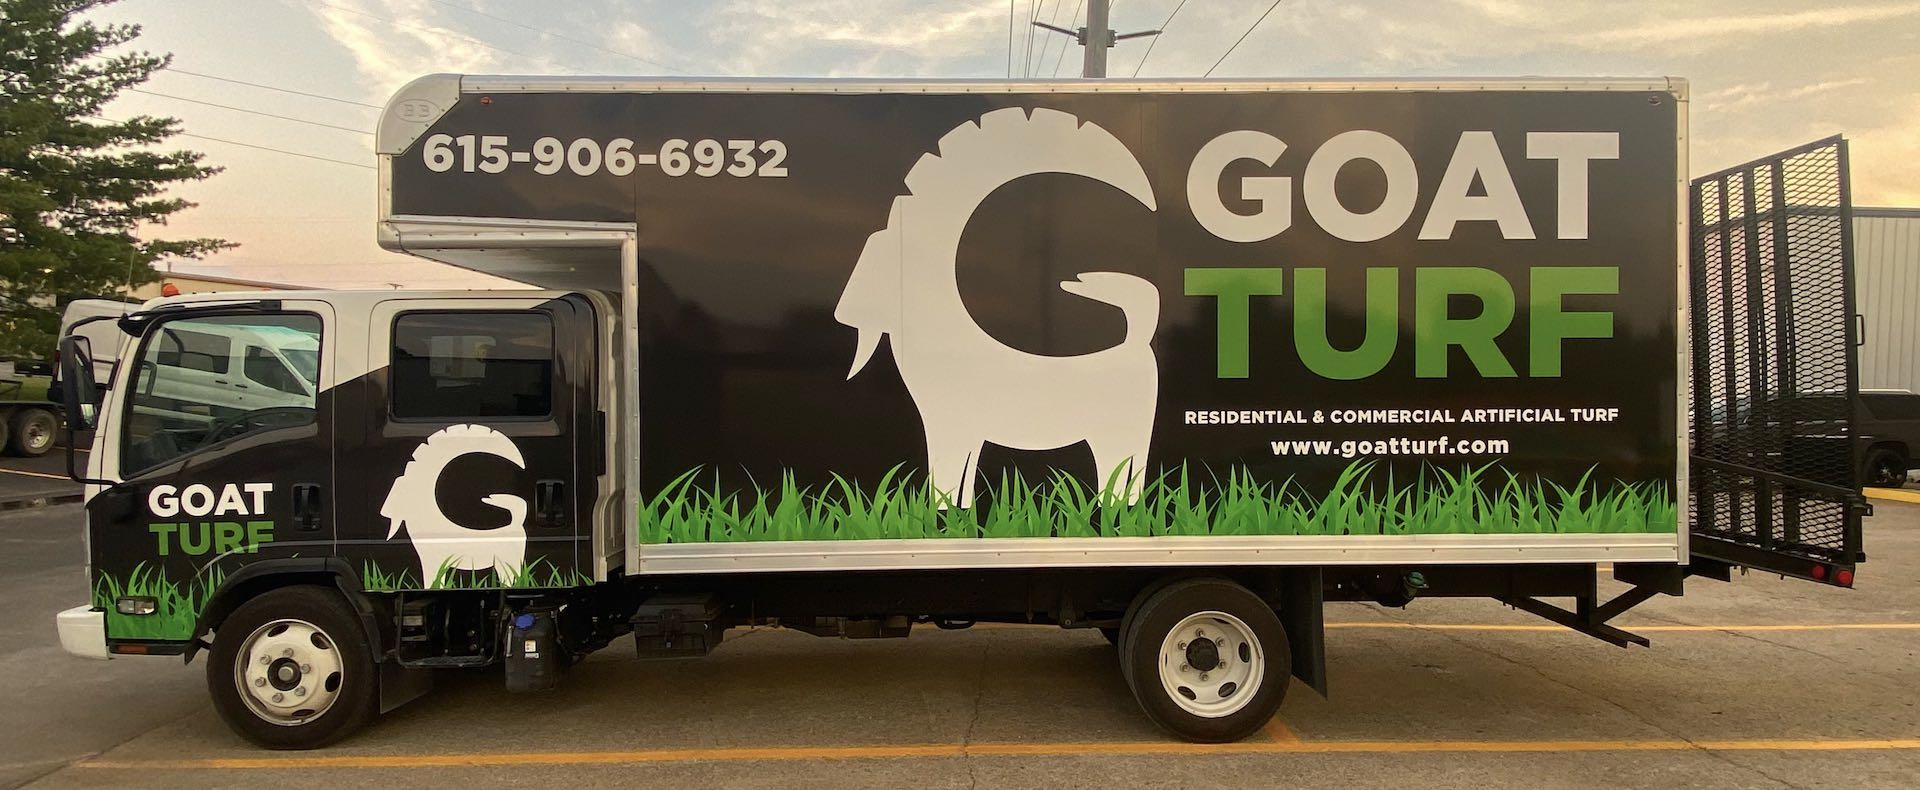 Goat Turf artificial grass wholesale delivery truck